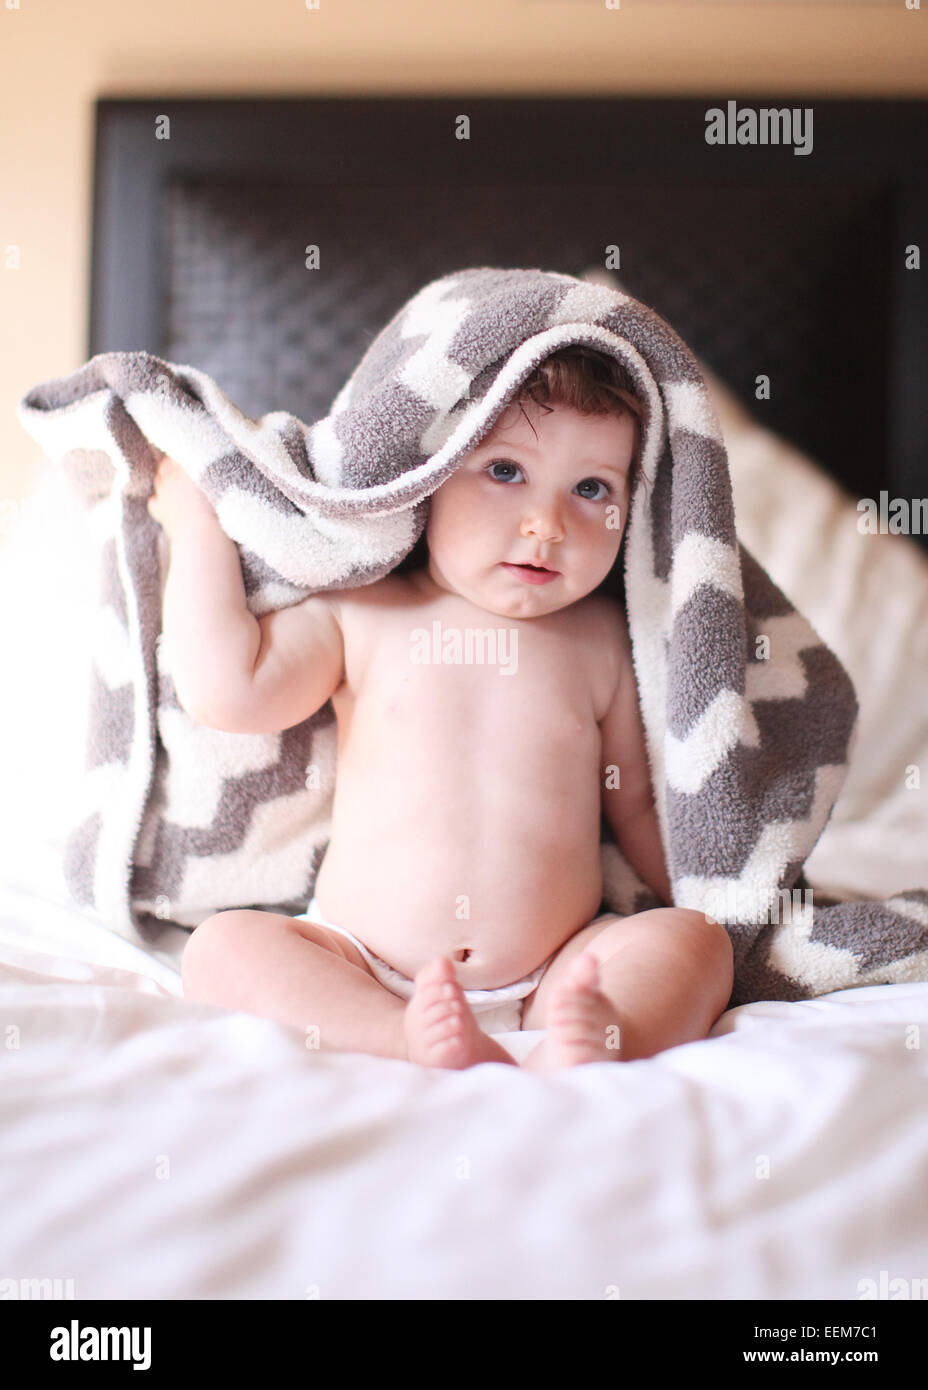 Baby girl covered with towel sitting on bed and looking at camera - Stock Image